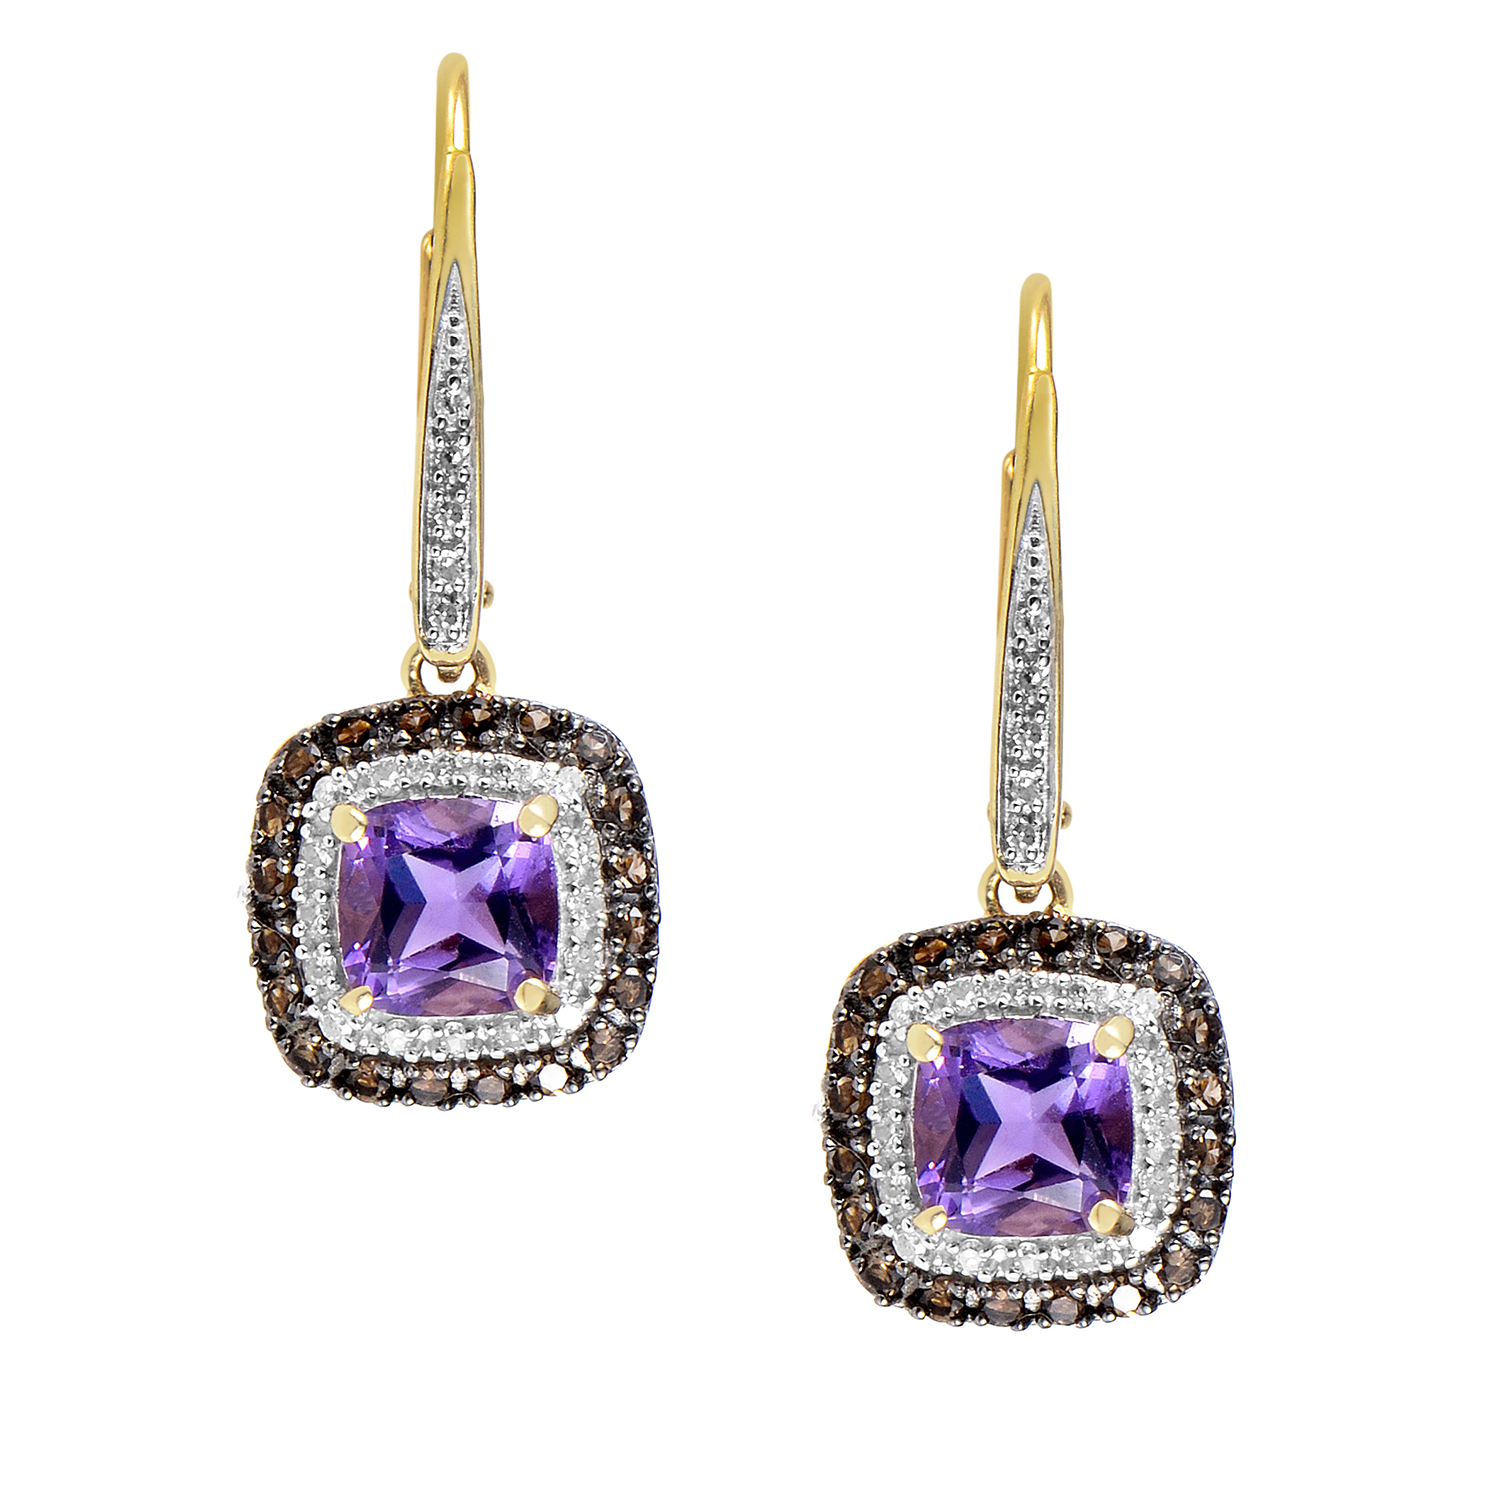 14K Yellow Gold Diamond & Amethyst Dangle Earrings EL4-10036YAM